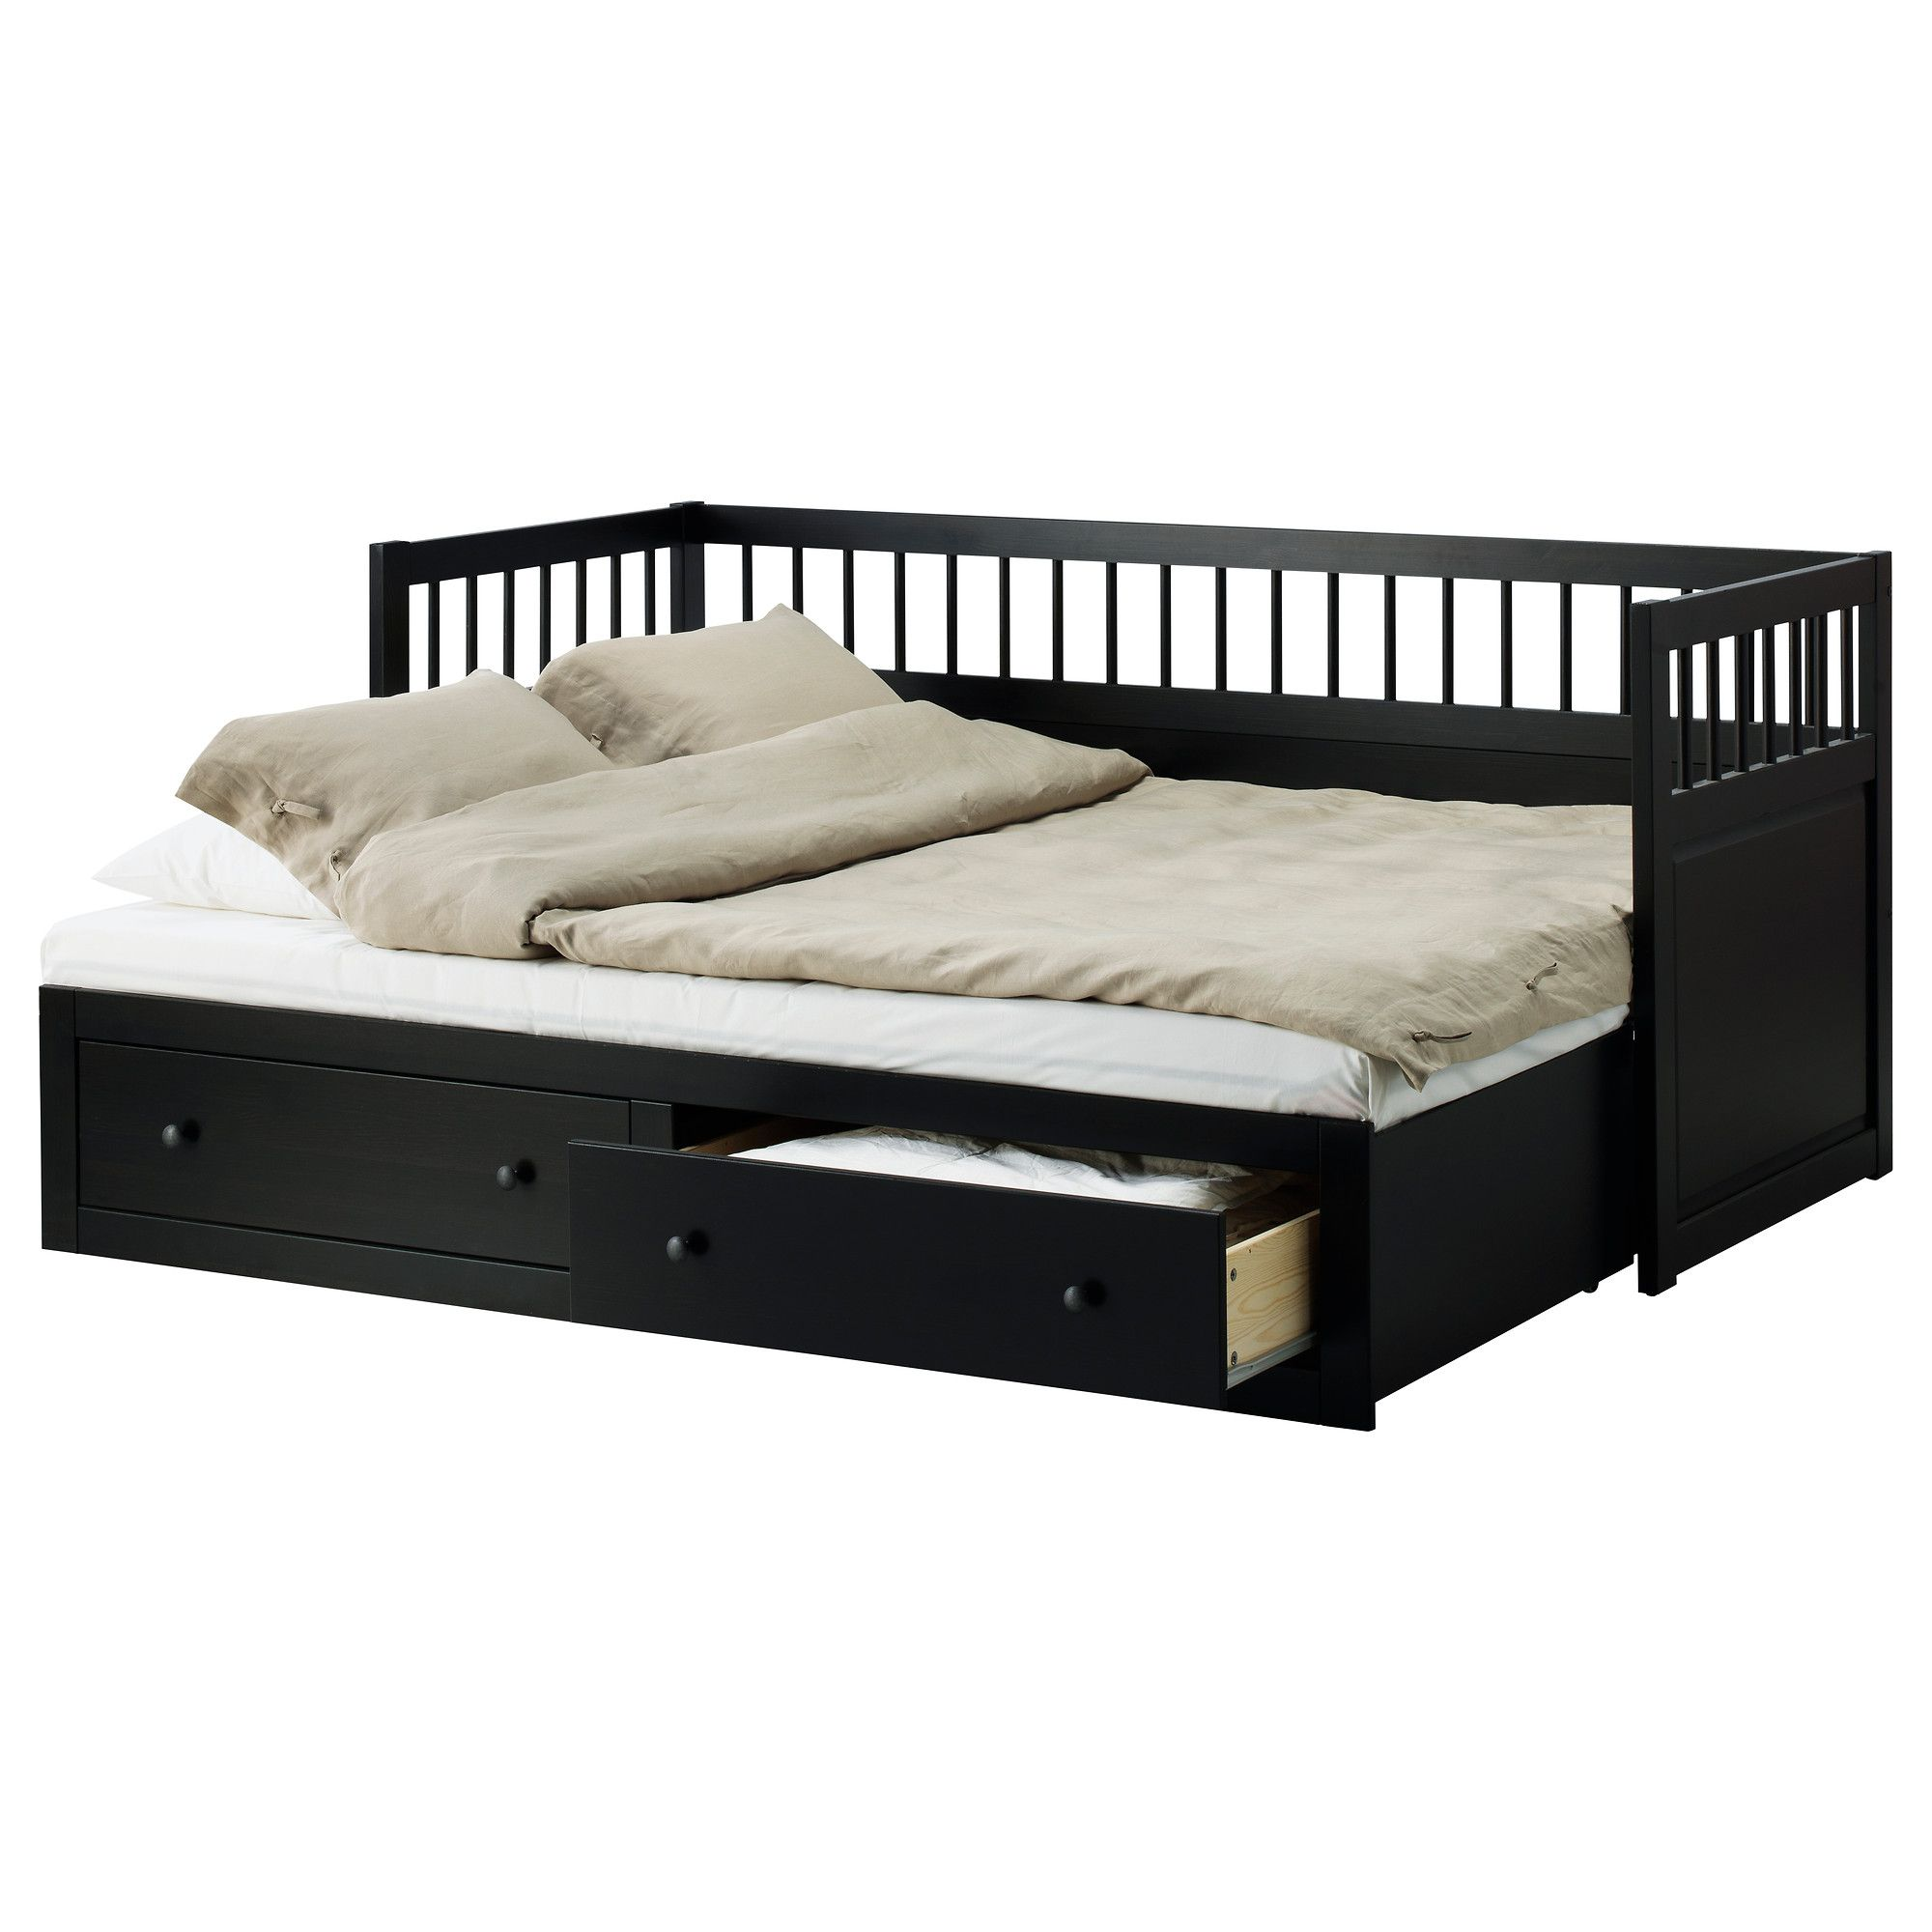 Awesome Wooden Painted Black Best Ikea Daybed With Trundle Tuxedo Backseat Models In Modern Master Bedroom Decors